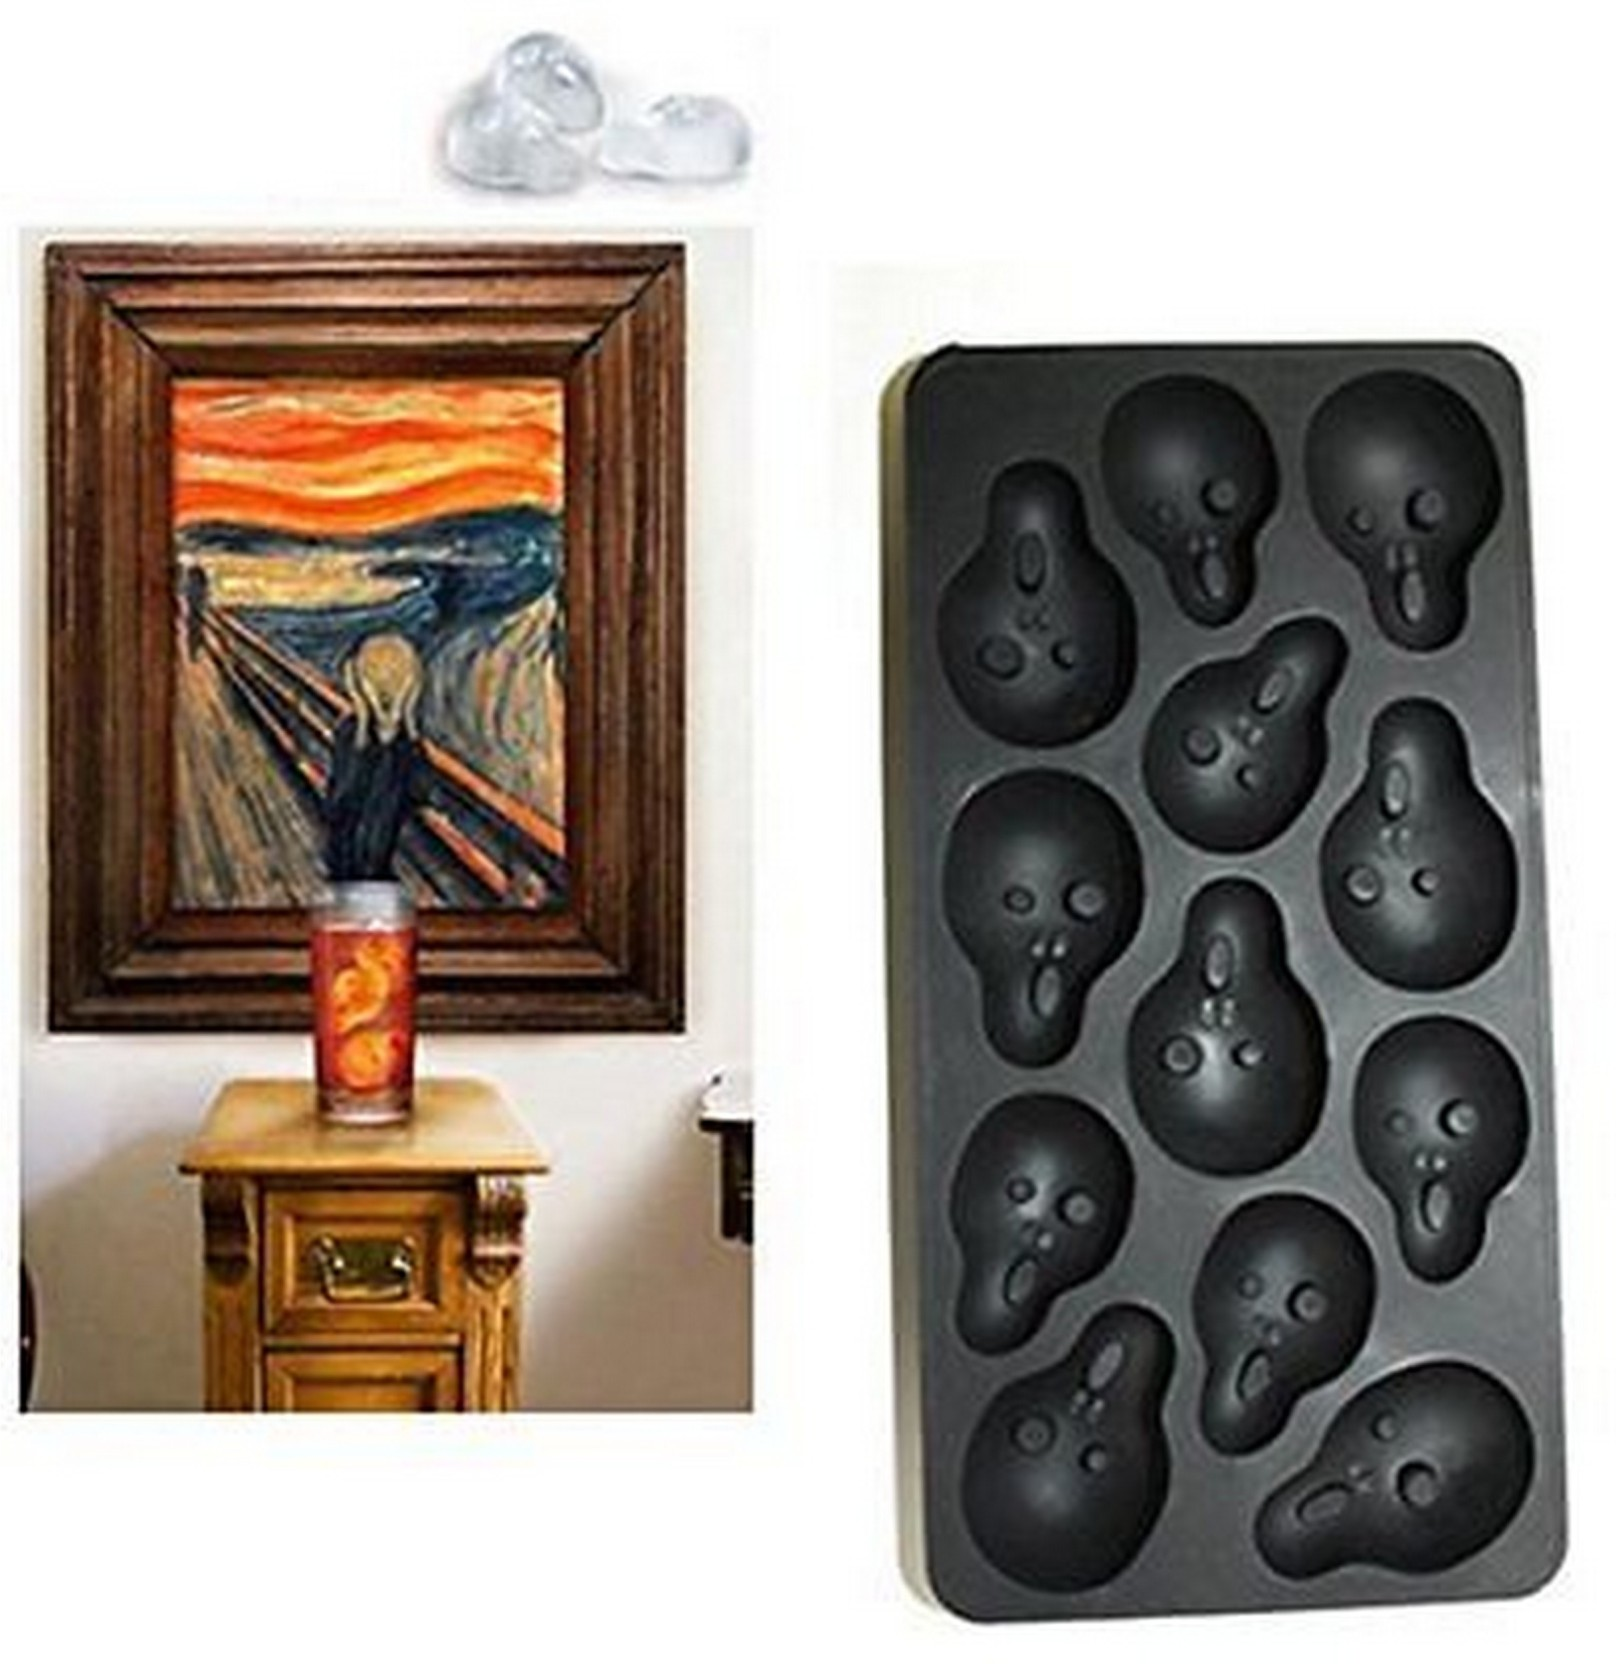 ls letsshop ice cube tray - funny halloween silicone scream face ice